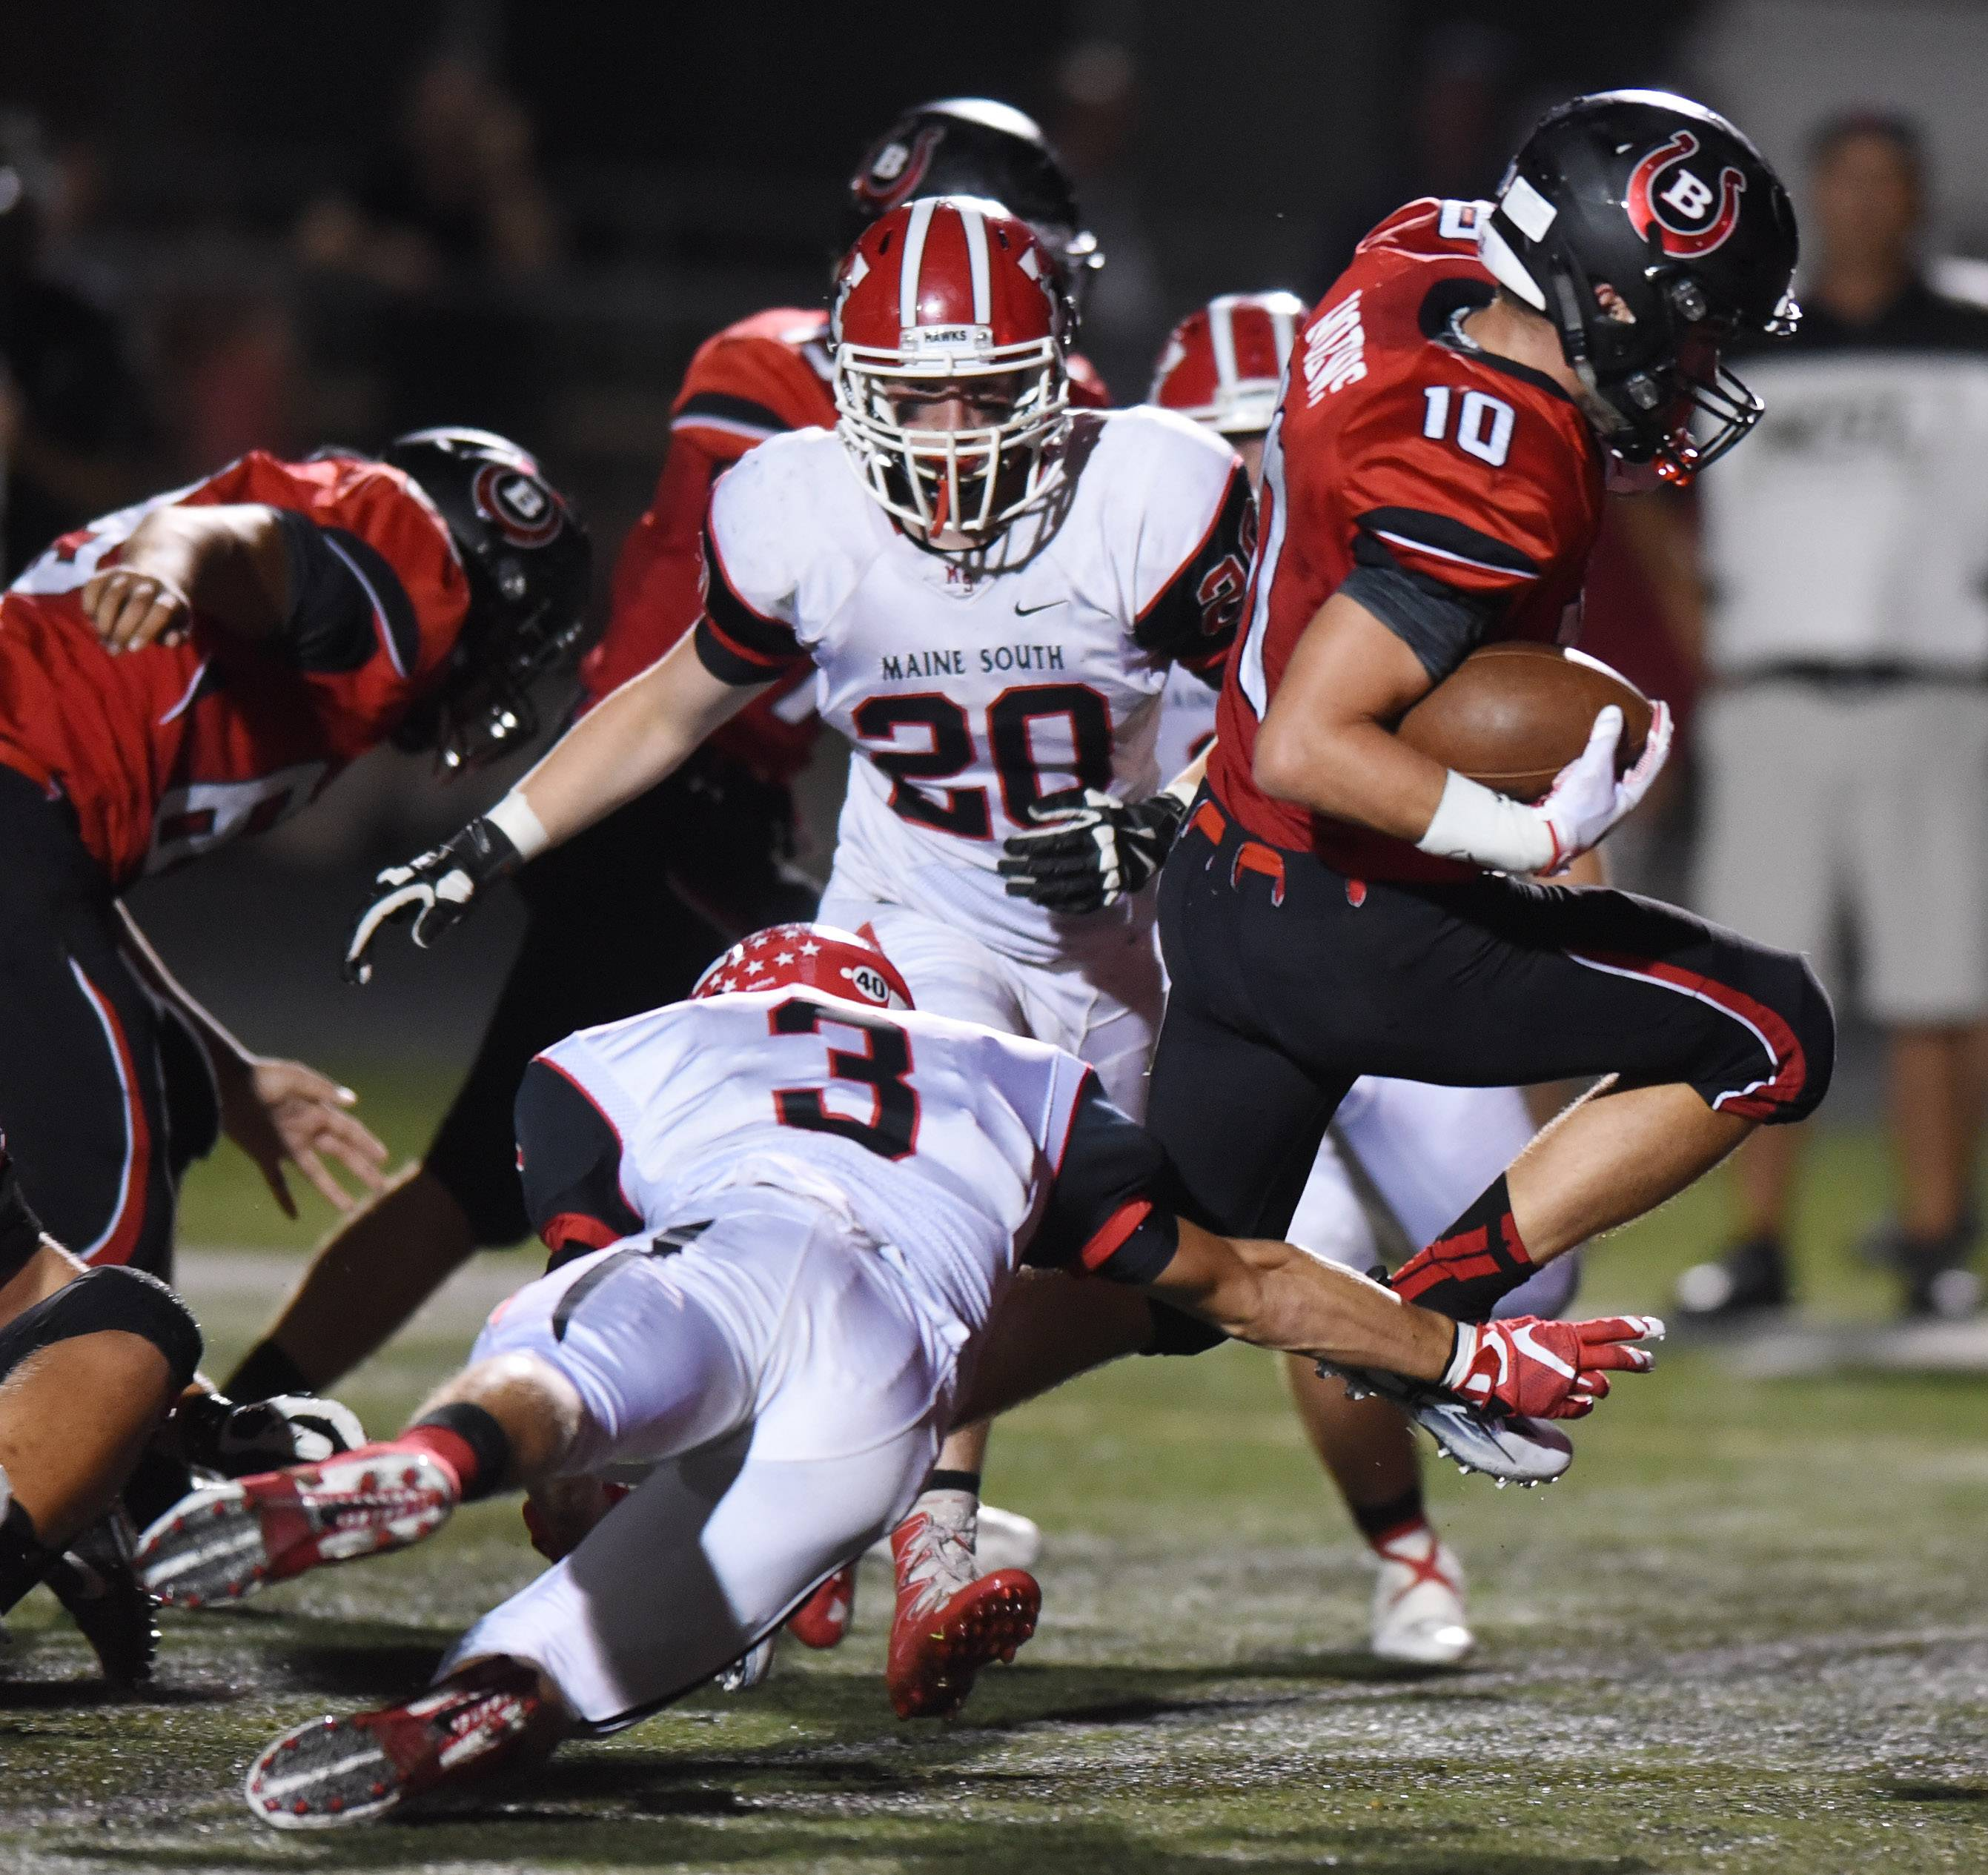 Joe Lewnard/jlewnard@dailyherald.comBarrington's Logan Moews scores a second-quarter touchdown after getting past Maine South's Jack Hoffman (3) during Friday's football game at Barrington.